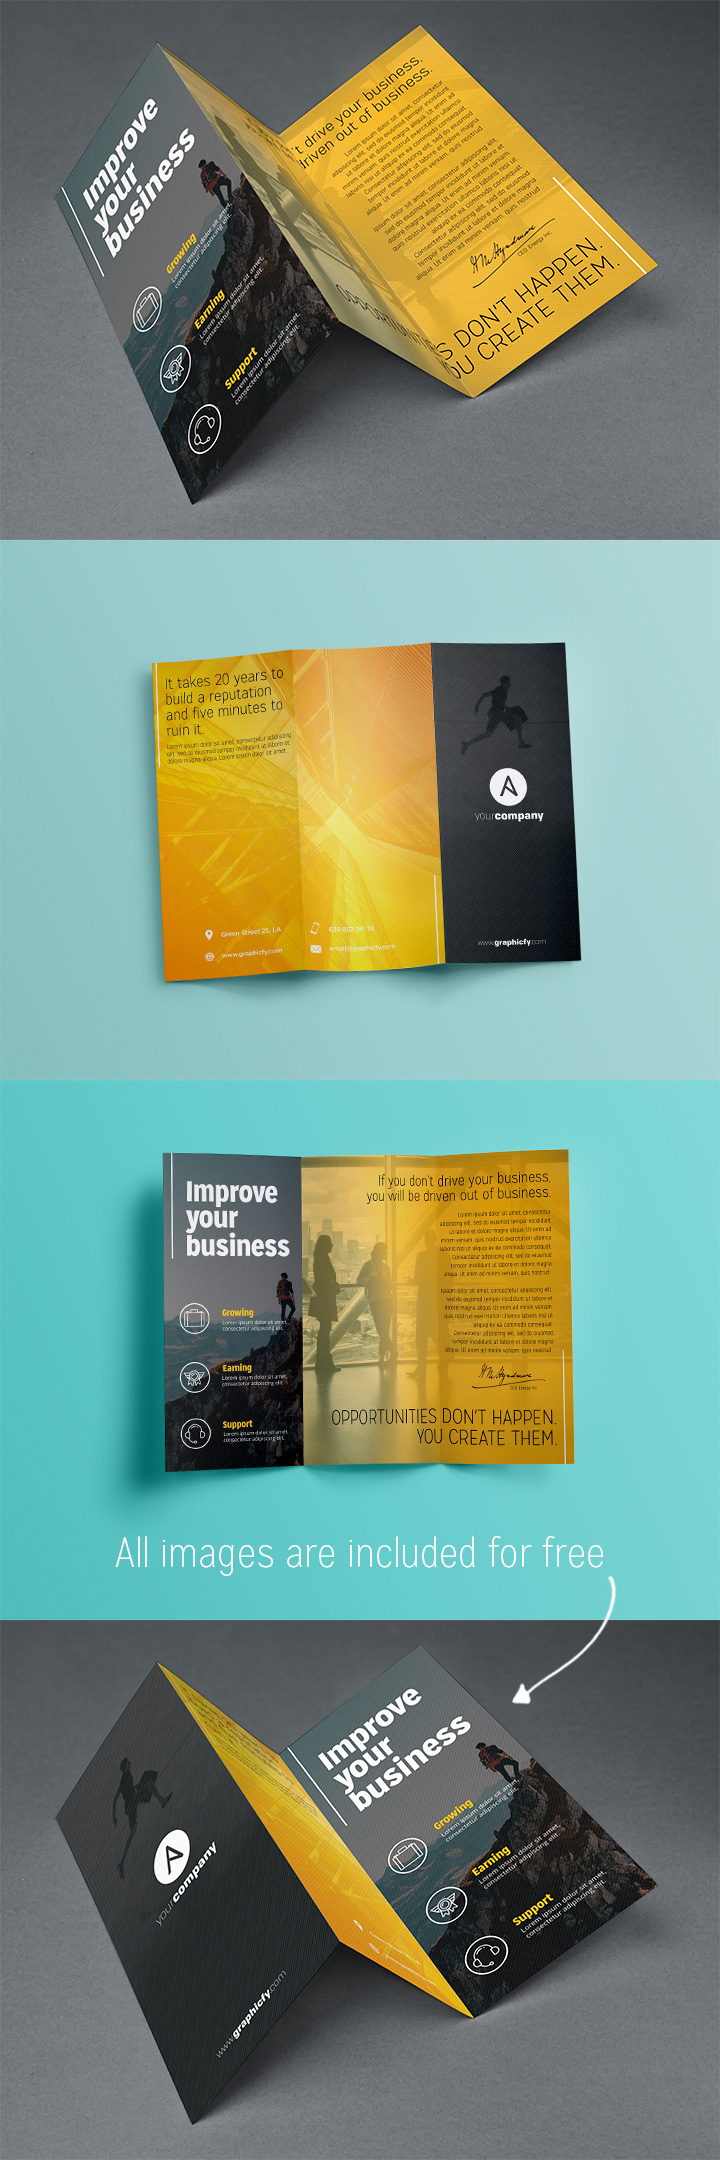 Tri fold brochure template psd brochure templates for Tri fold brochure templates